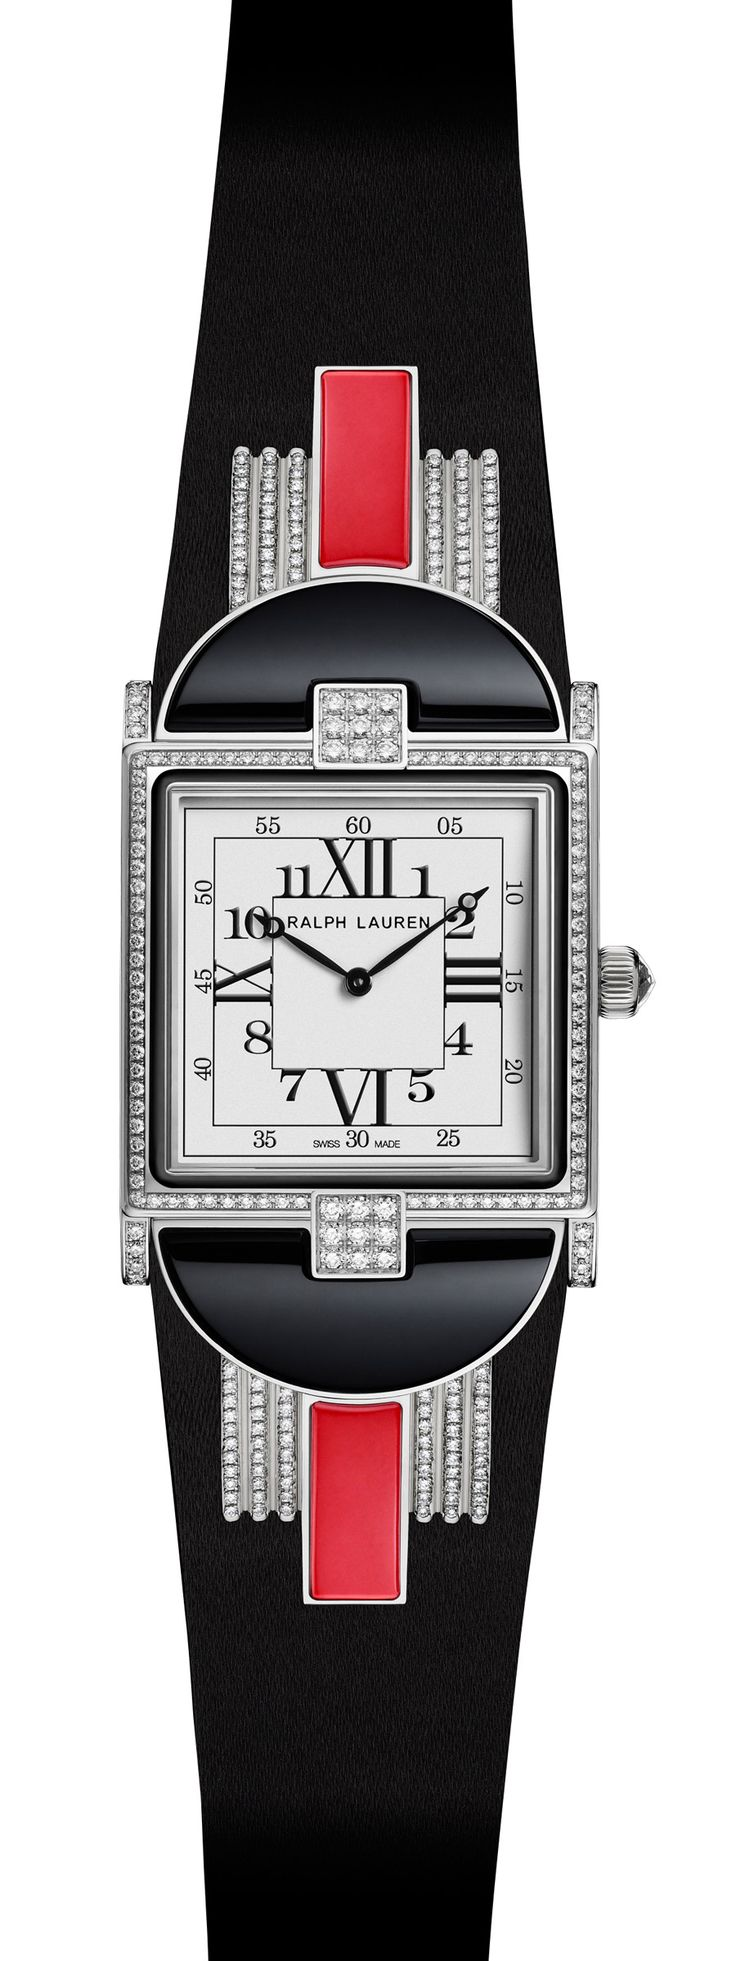 White gold Modern Art Deco watch with red coral-based stone with movement by Piaget for Ralph Lauren